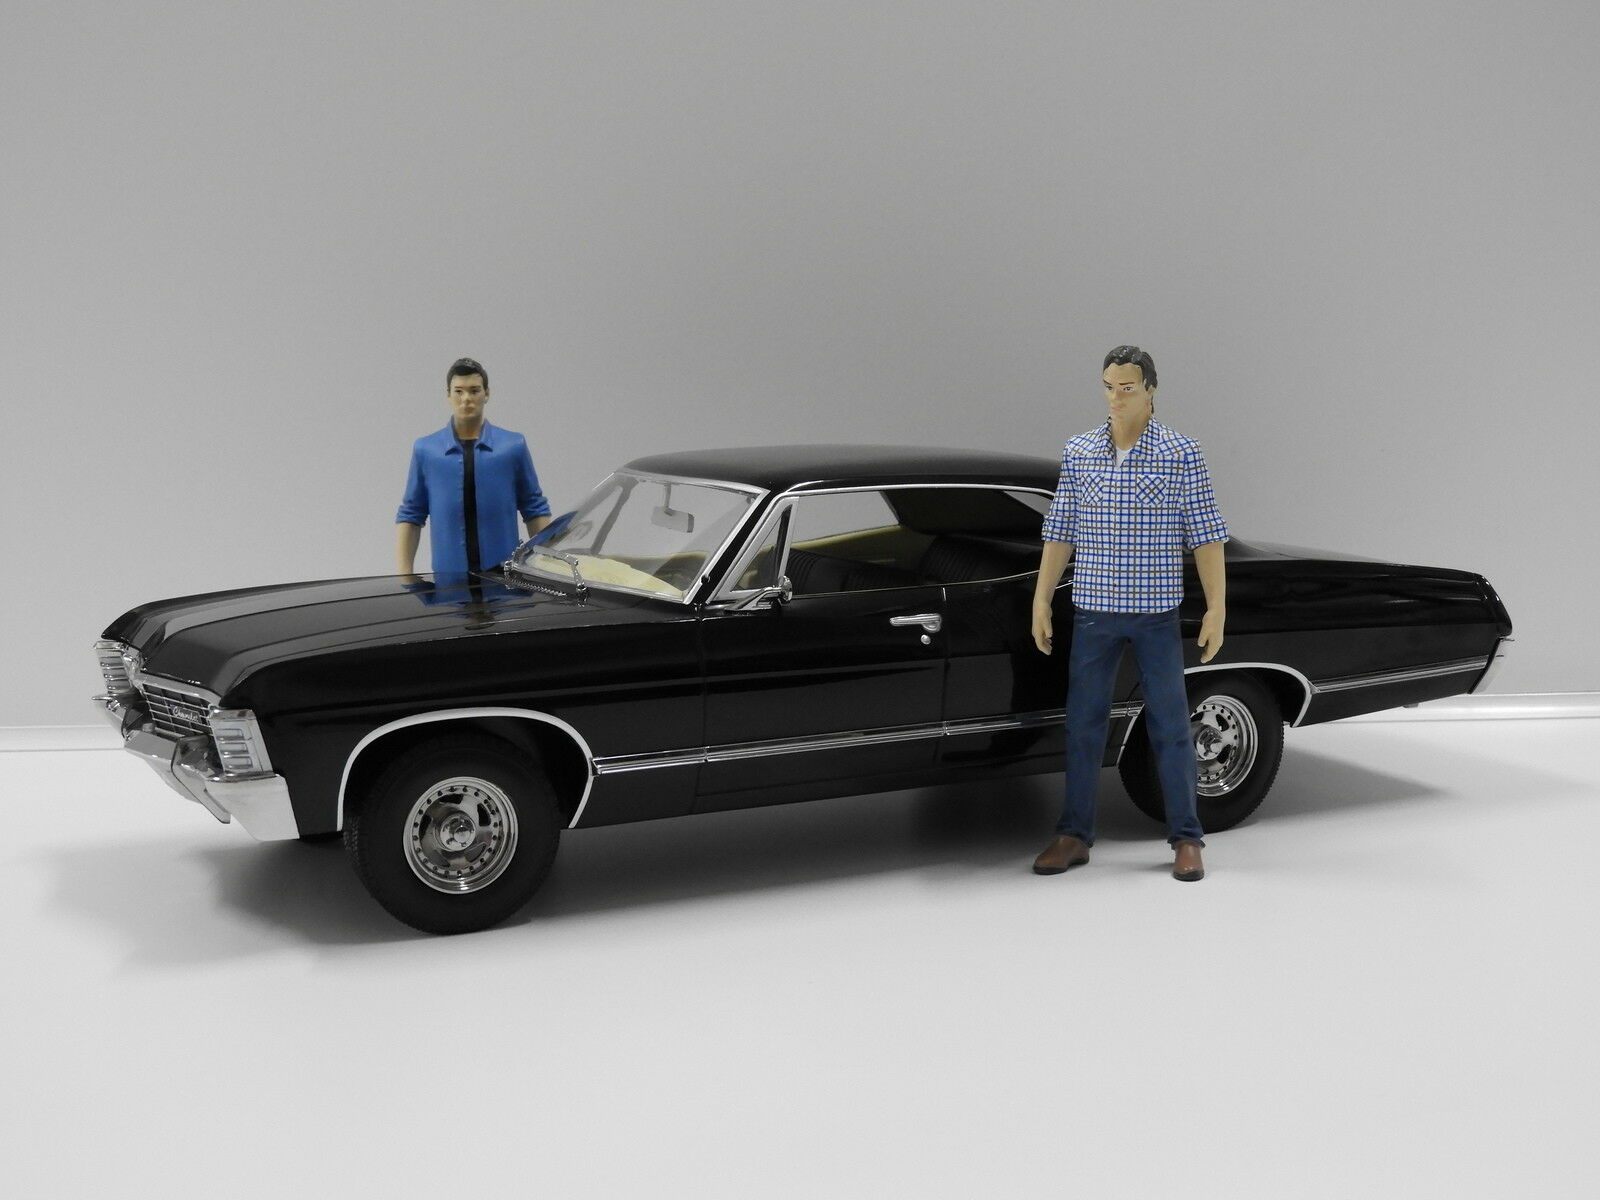 1:18 1967 Chevrolet Impala Sport Sedan  Supernatural  with Sam & Dean Figures Gr